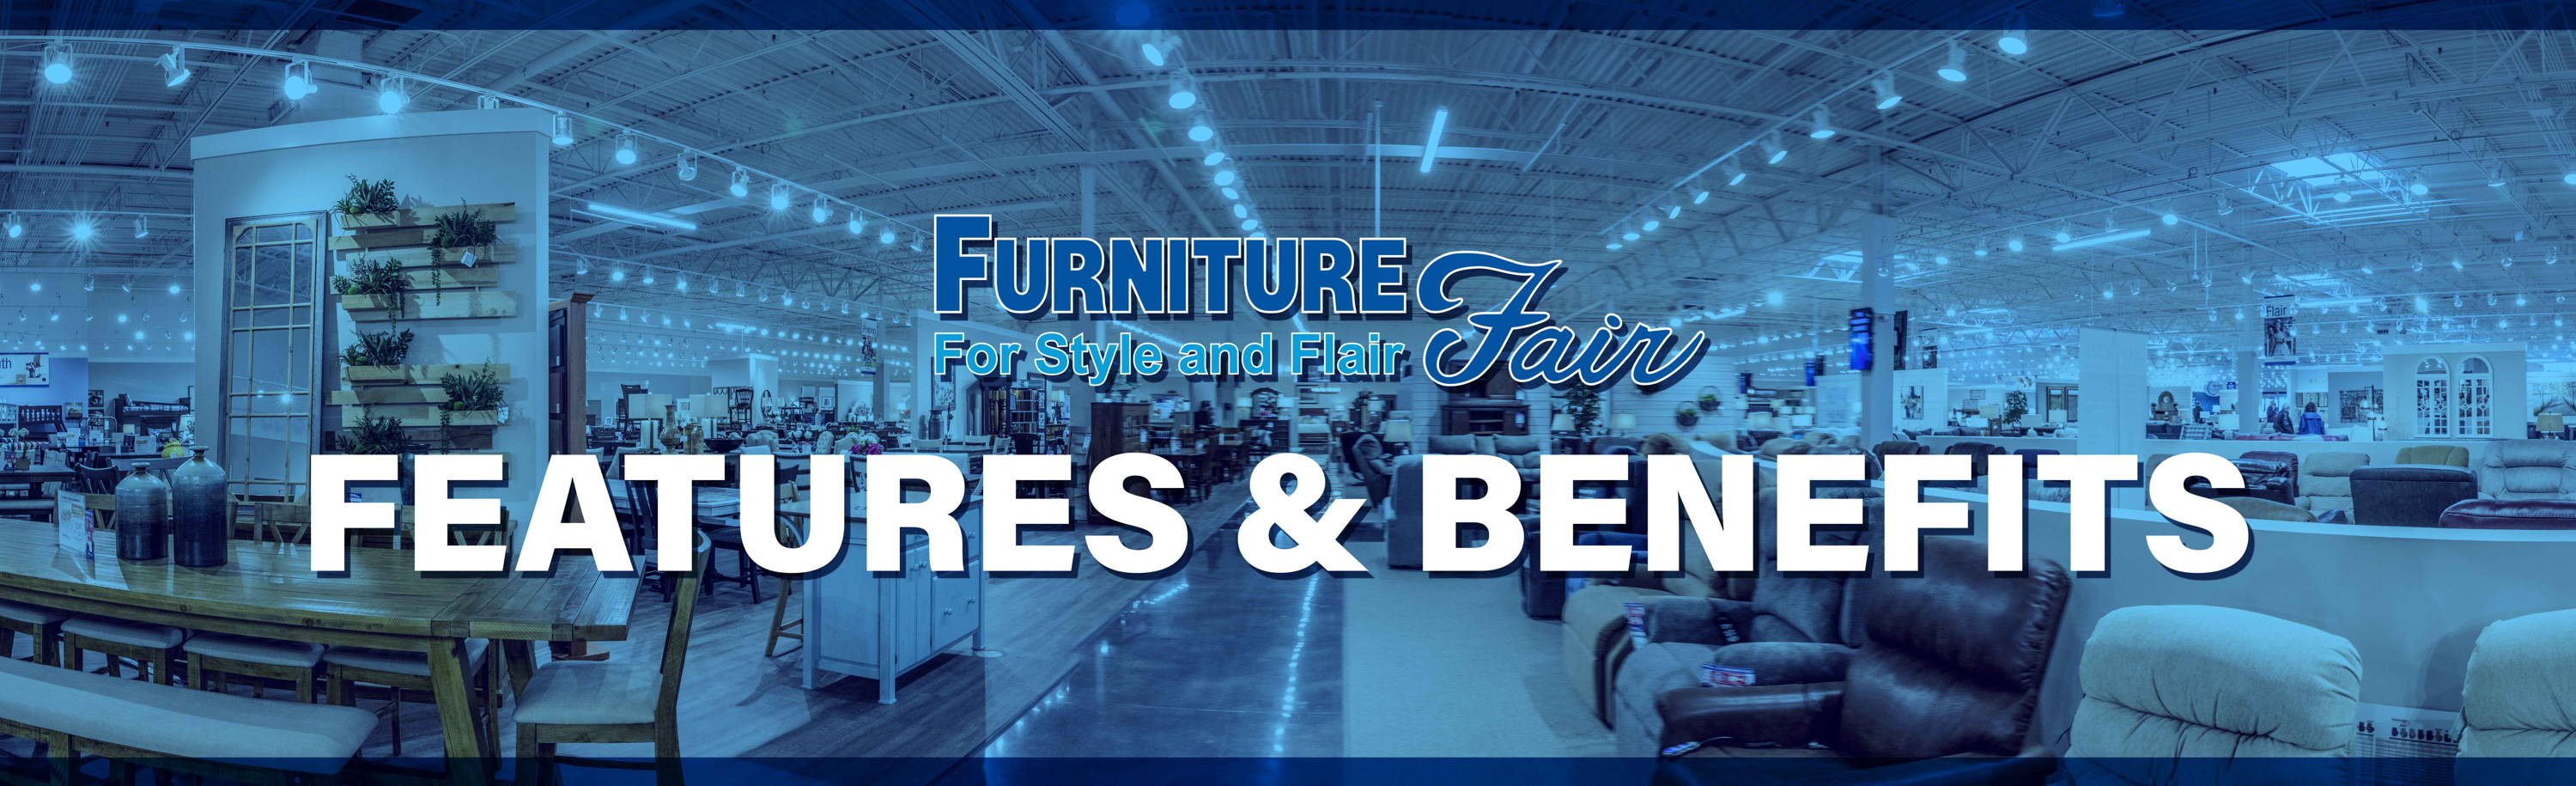 What Are The Features & Benefits Of Working At Furniture Fair?